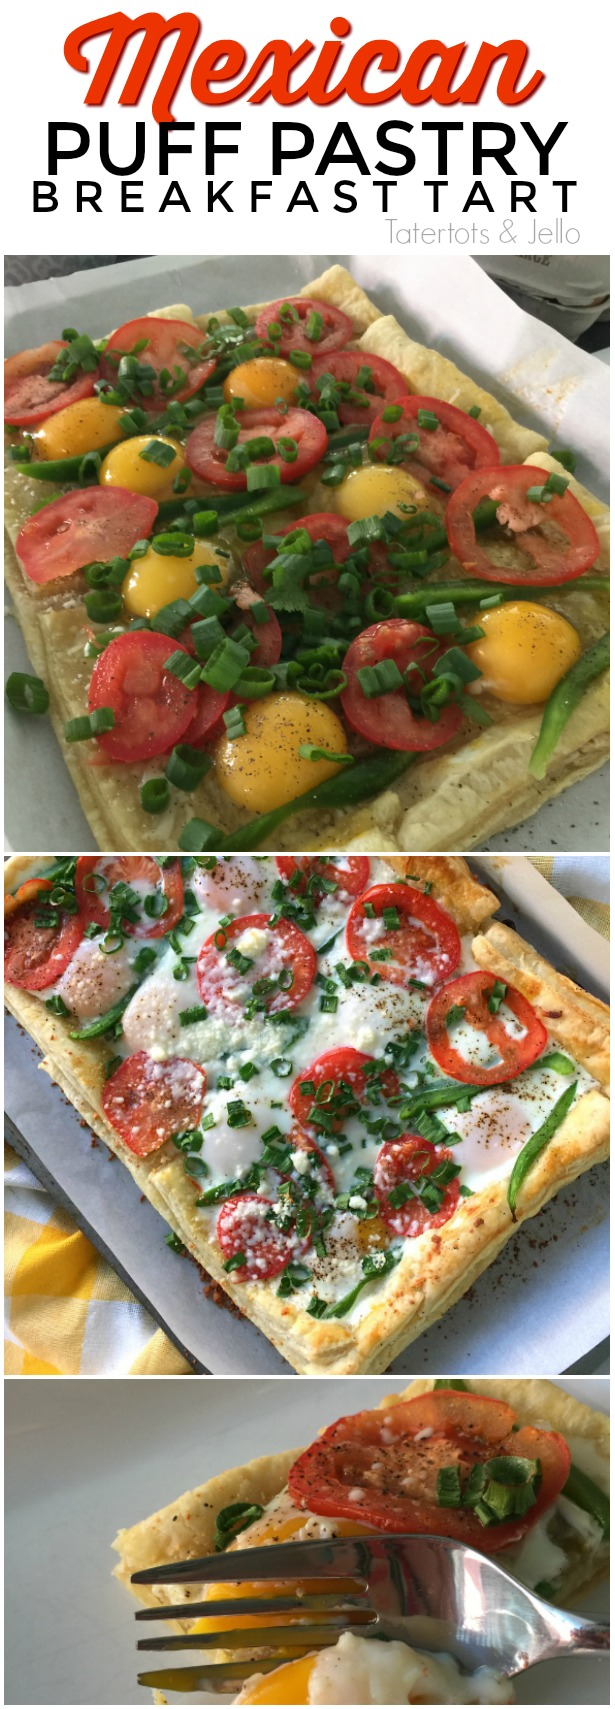 Southwestern puff pastry breakfast tart. Make this gorgeous tart in less than half an hour. Perfect for brunch!